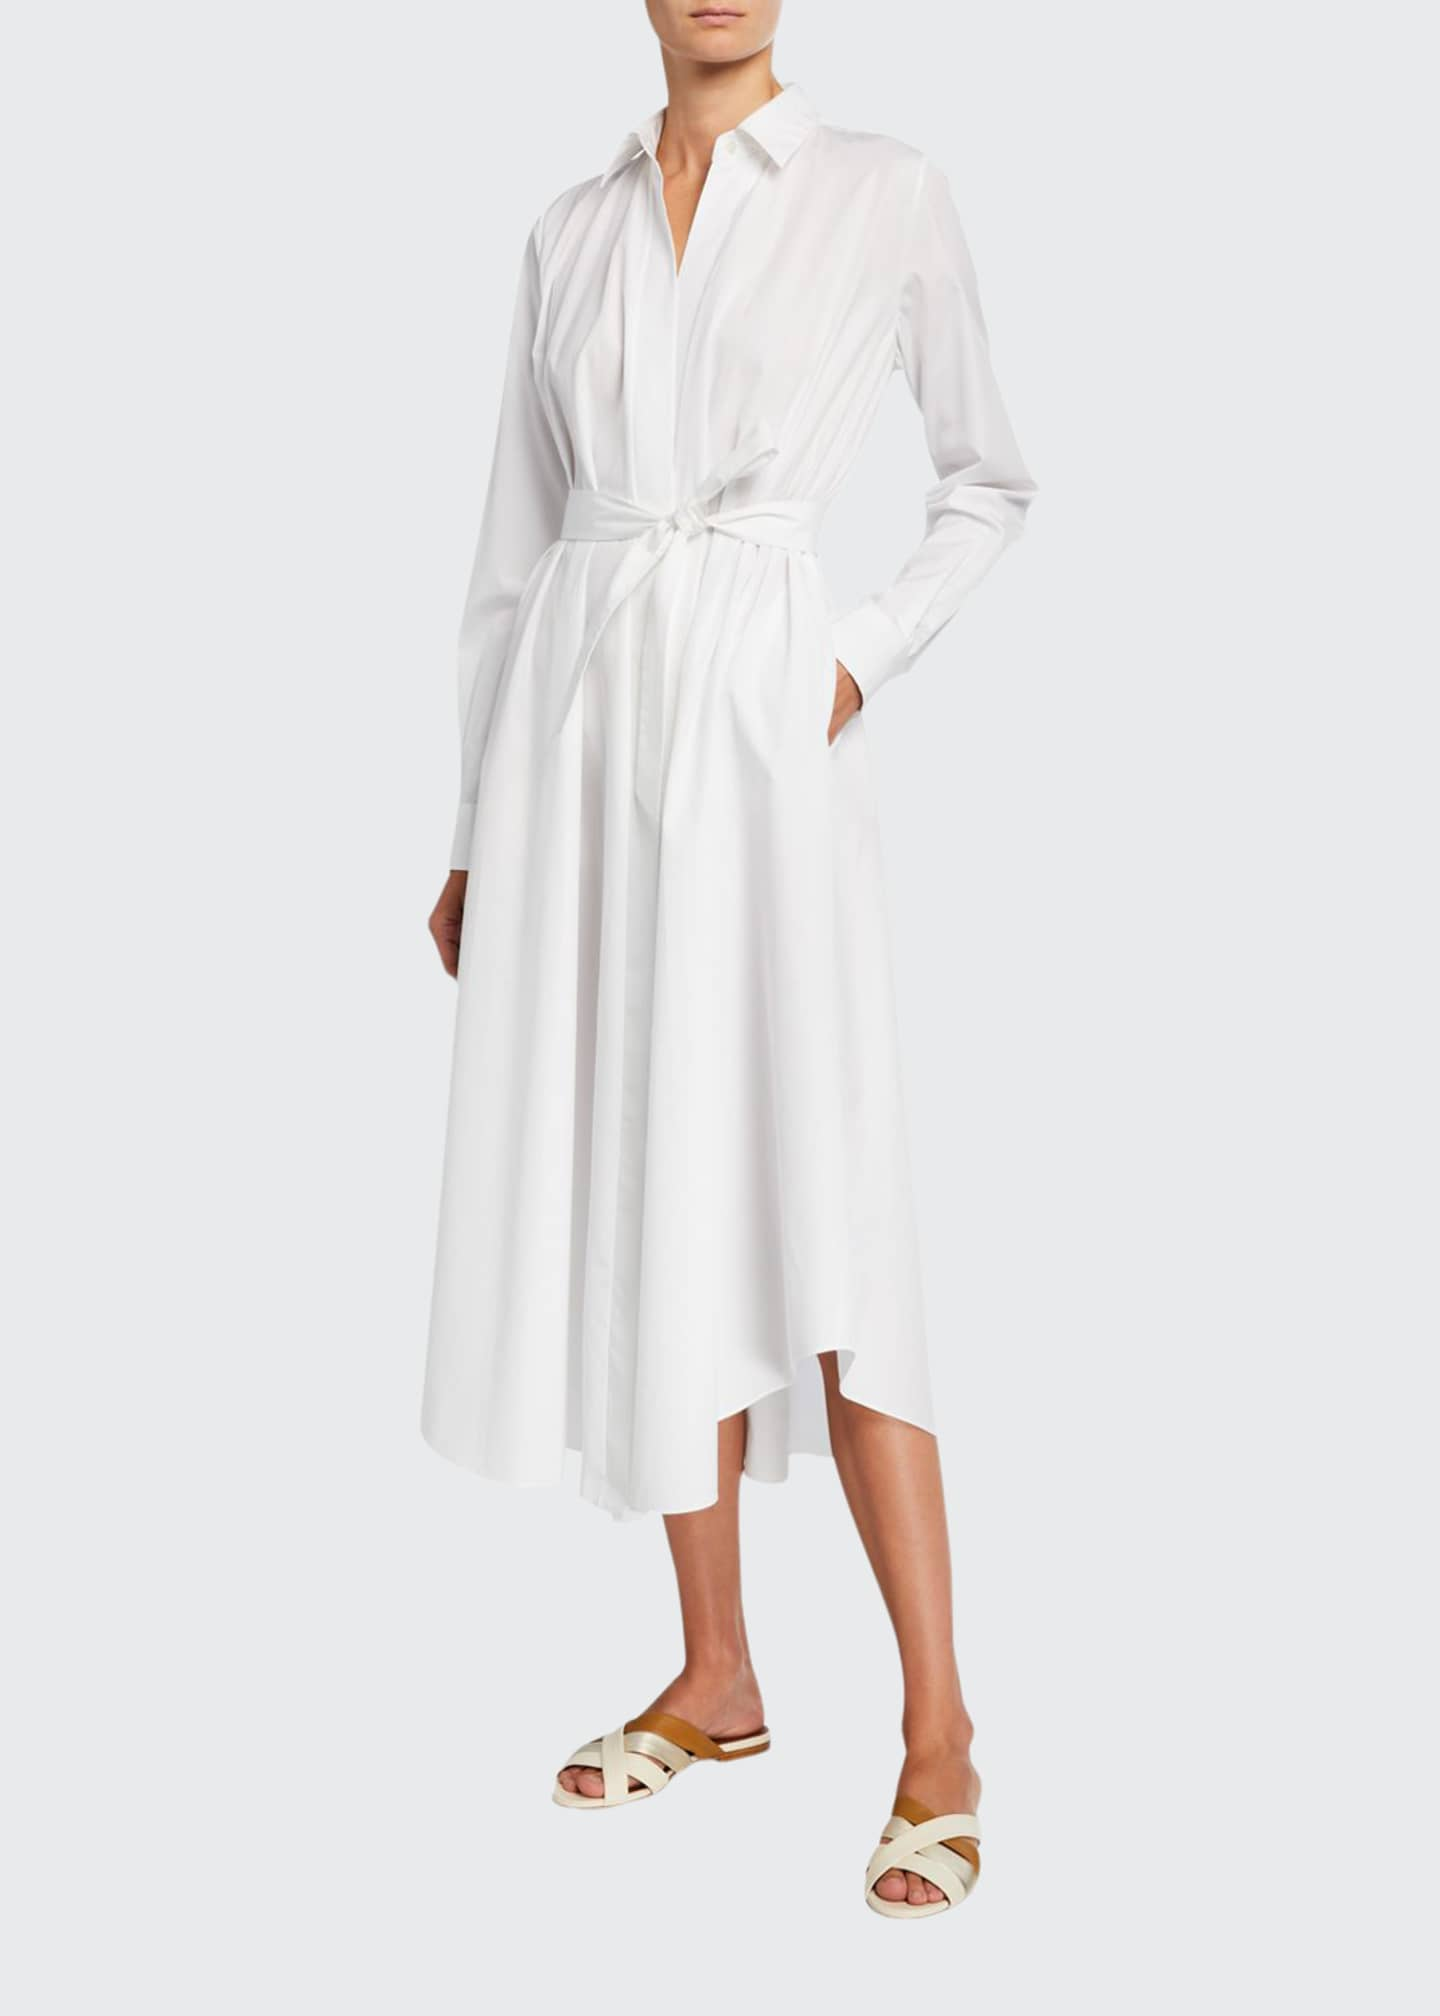 Loro Piana Poplin Belted Flare Dress